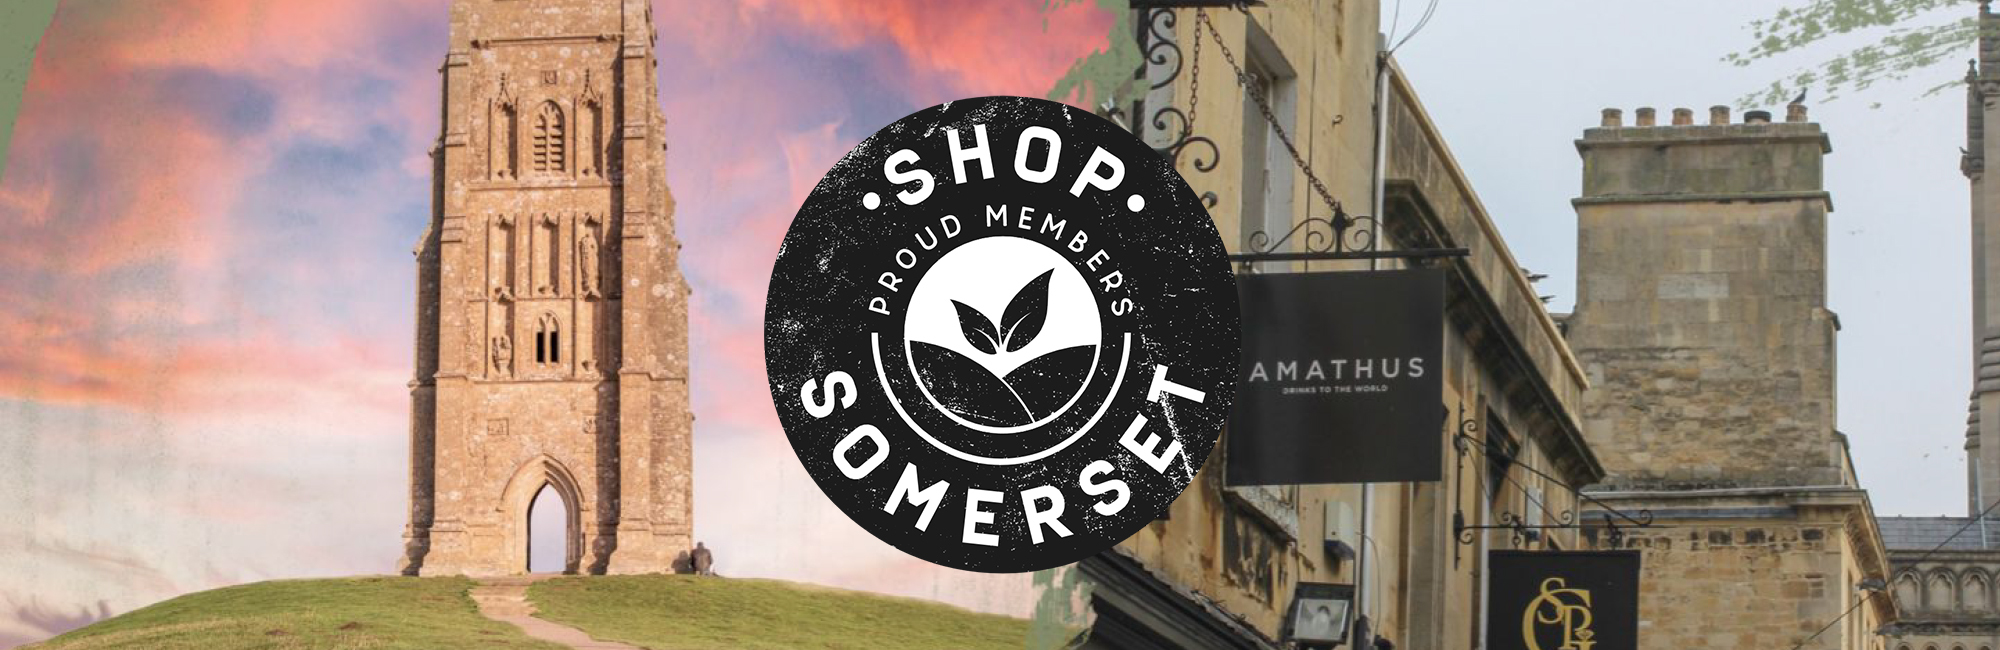 CLEAN joins Shop Somerset - News - CLEAN Services